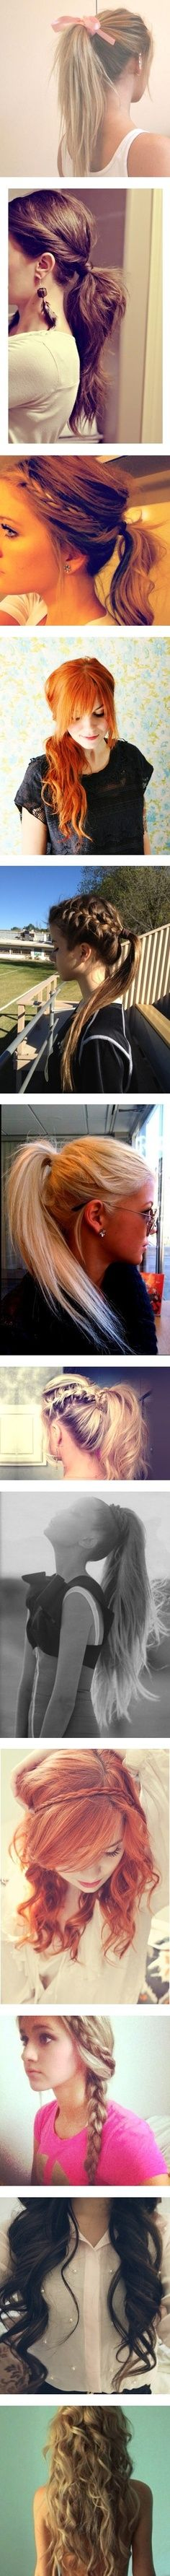 best ium growing my hair out images on pinterest gorgeous hair